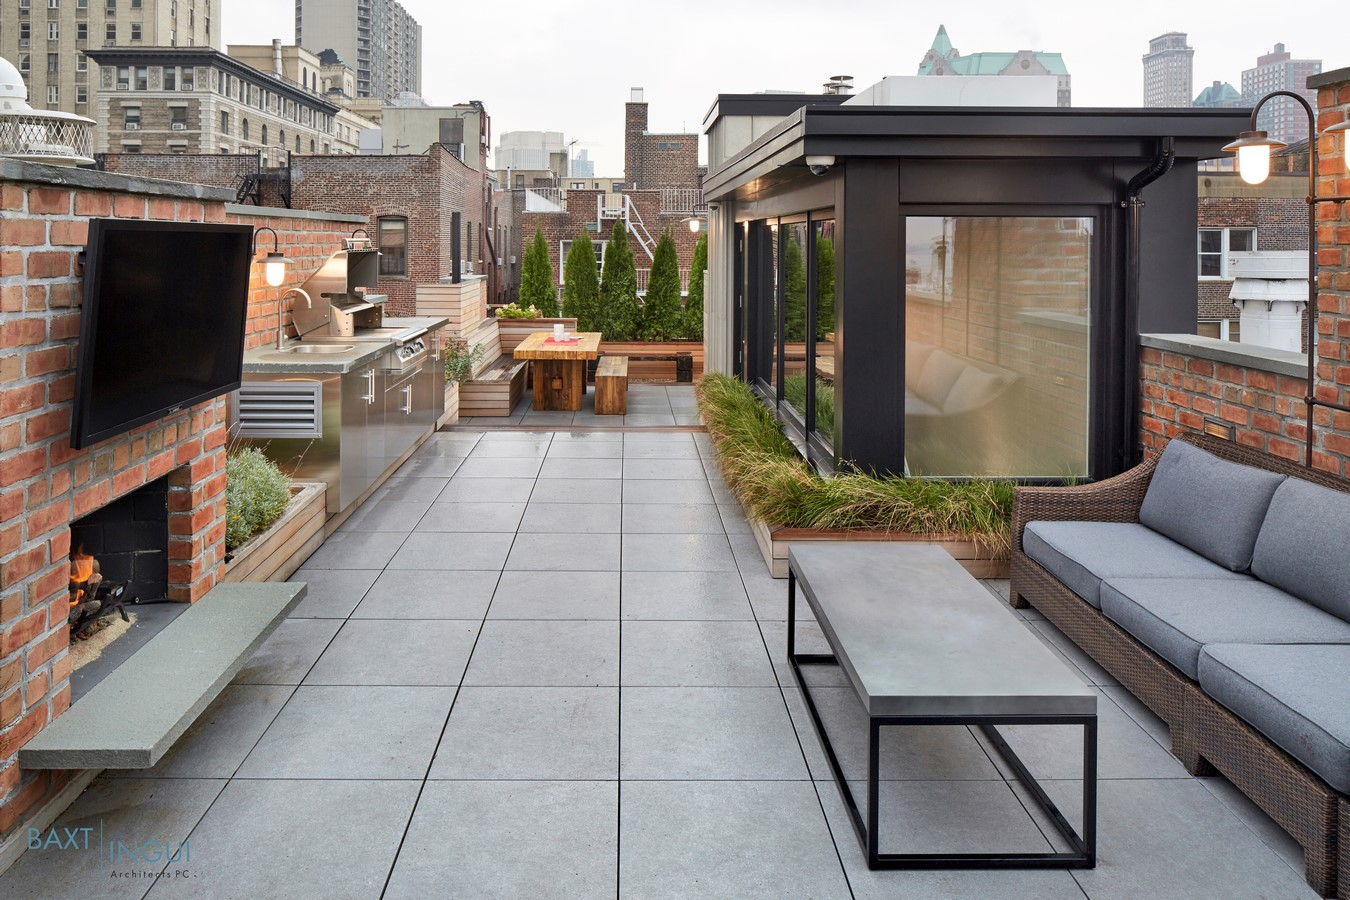 5166 Brooklyn Heights Passive Townhouse by Baxt Ingui: Sheet 2